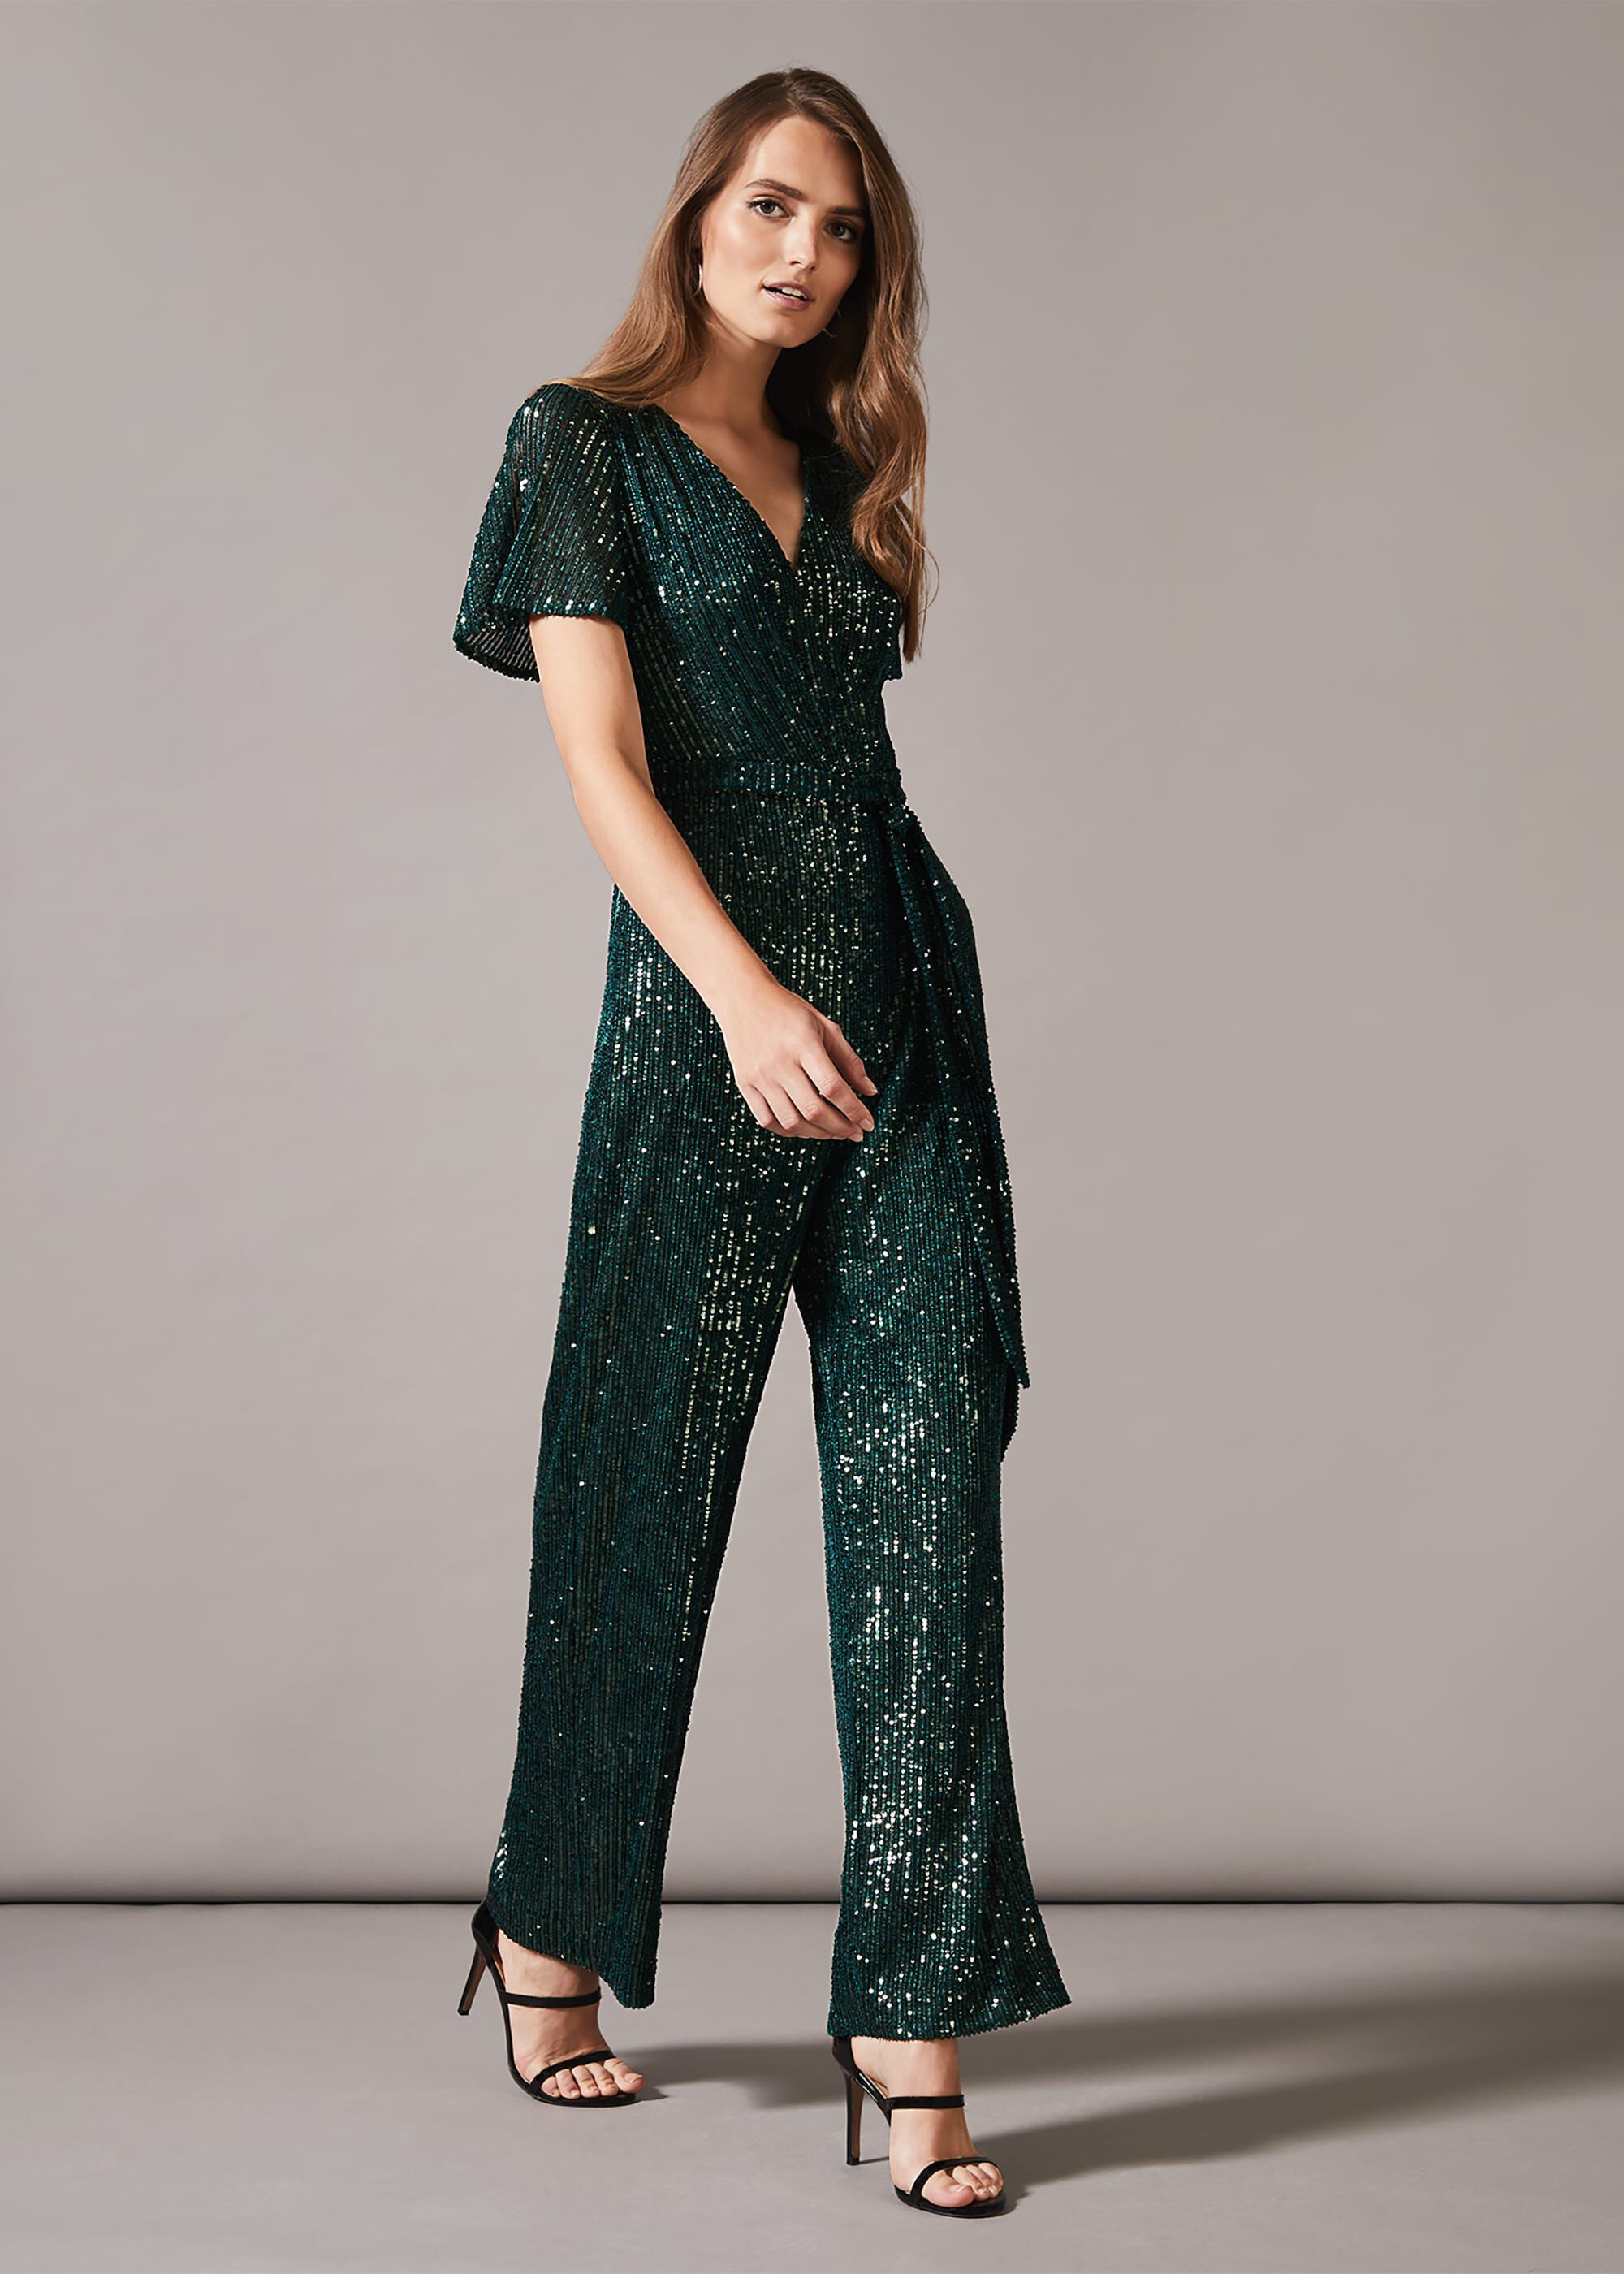 Phase Eight Alessandra Sequin Jumpsuit, Green, Jumpsuit